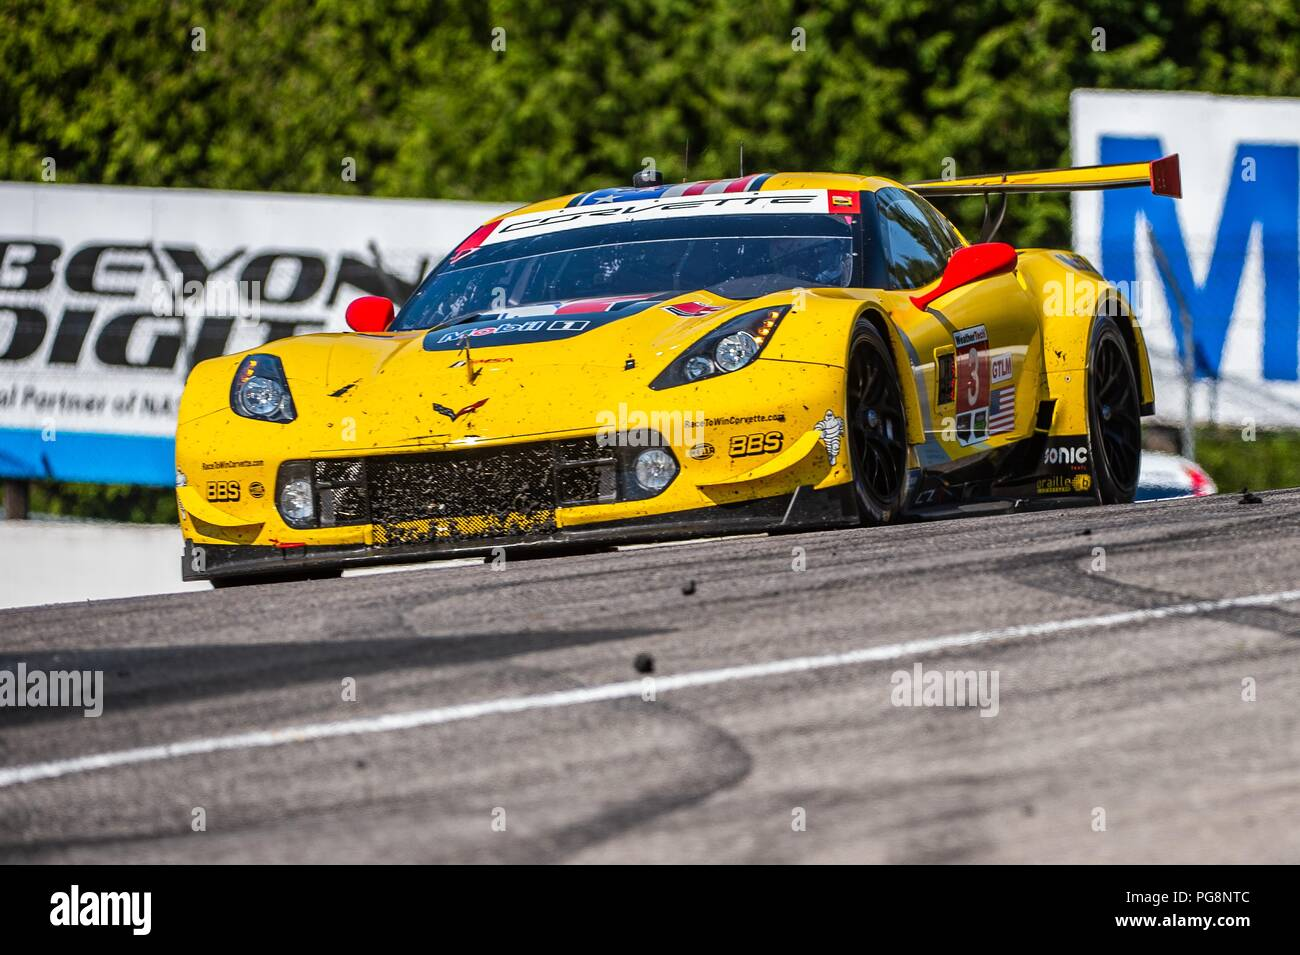 Bowmanville, CAN., 08 Jul 2018. 8th July, 2018. The number 3 Corvette C7.R, driven by the team of Jan Magnussen and Antonio Garcia, in the GT Le Mans series, navigate the hairpin number 5 Moss corner on 08 of July, 2018 at Canadian Tire Motorsport Park during the Mobil 1 SportsCar Grand Prix weekend. Credit: Victor Biro/ZUMA Wire/Alamy Live News Stock Photo